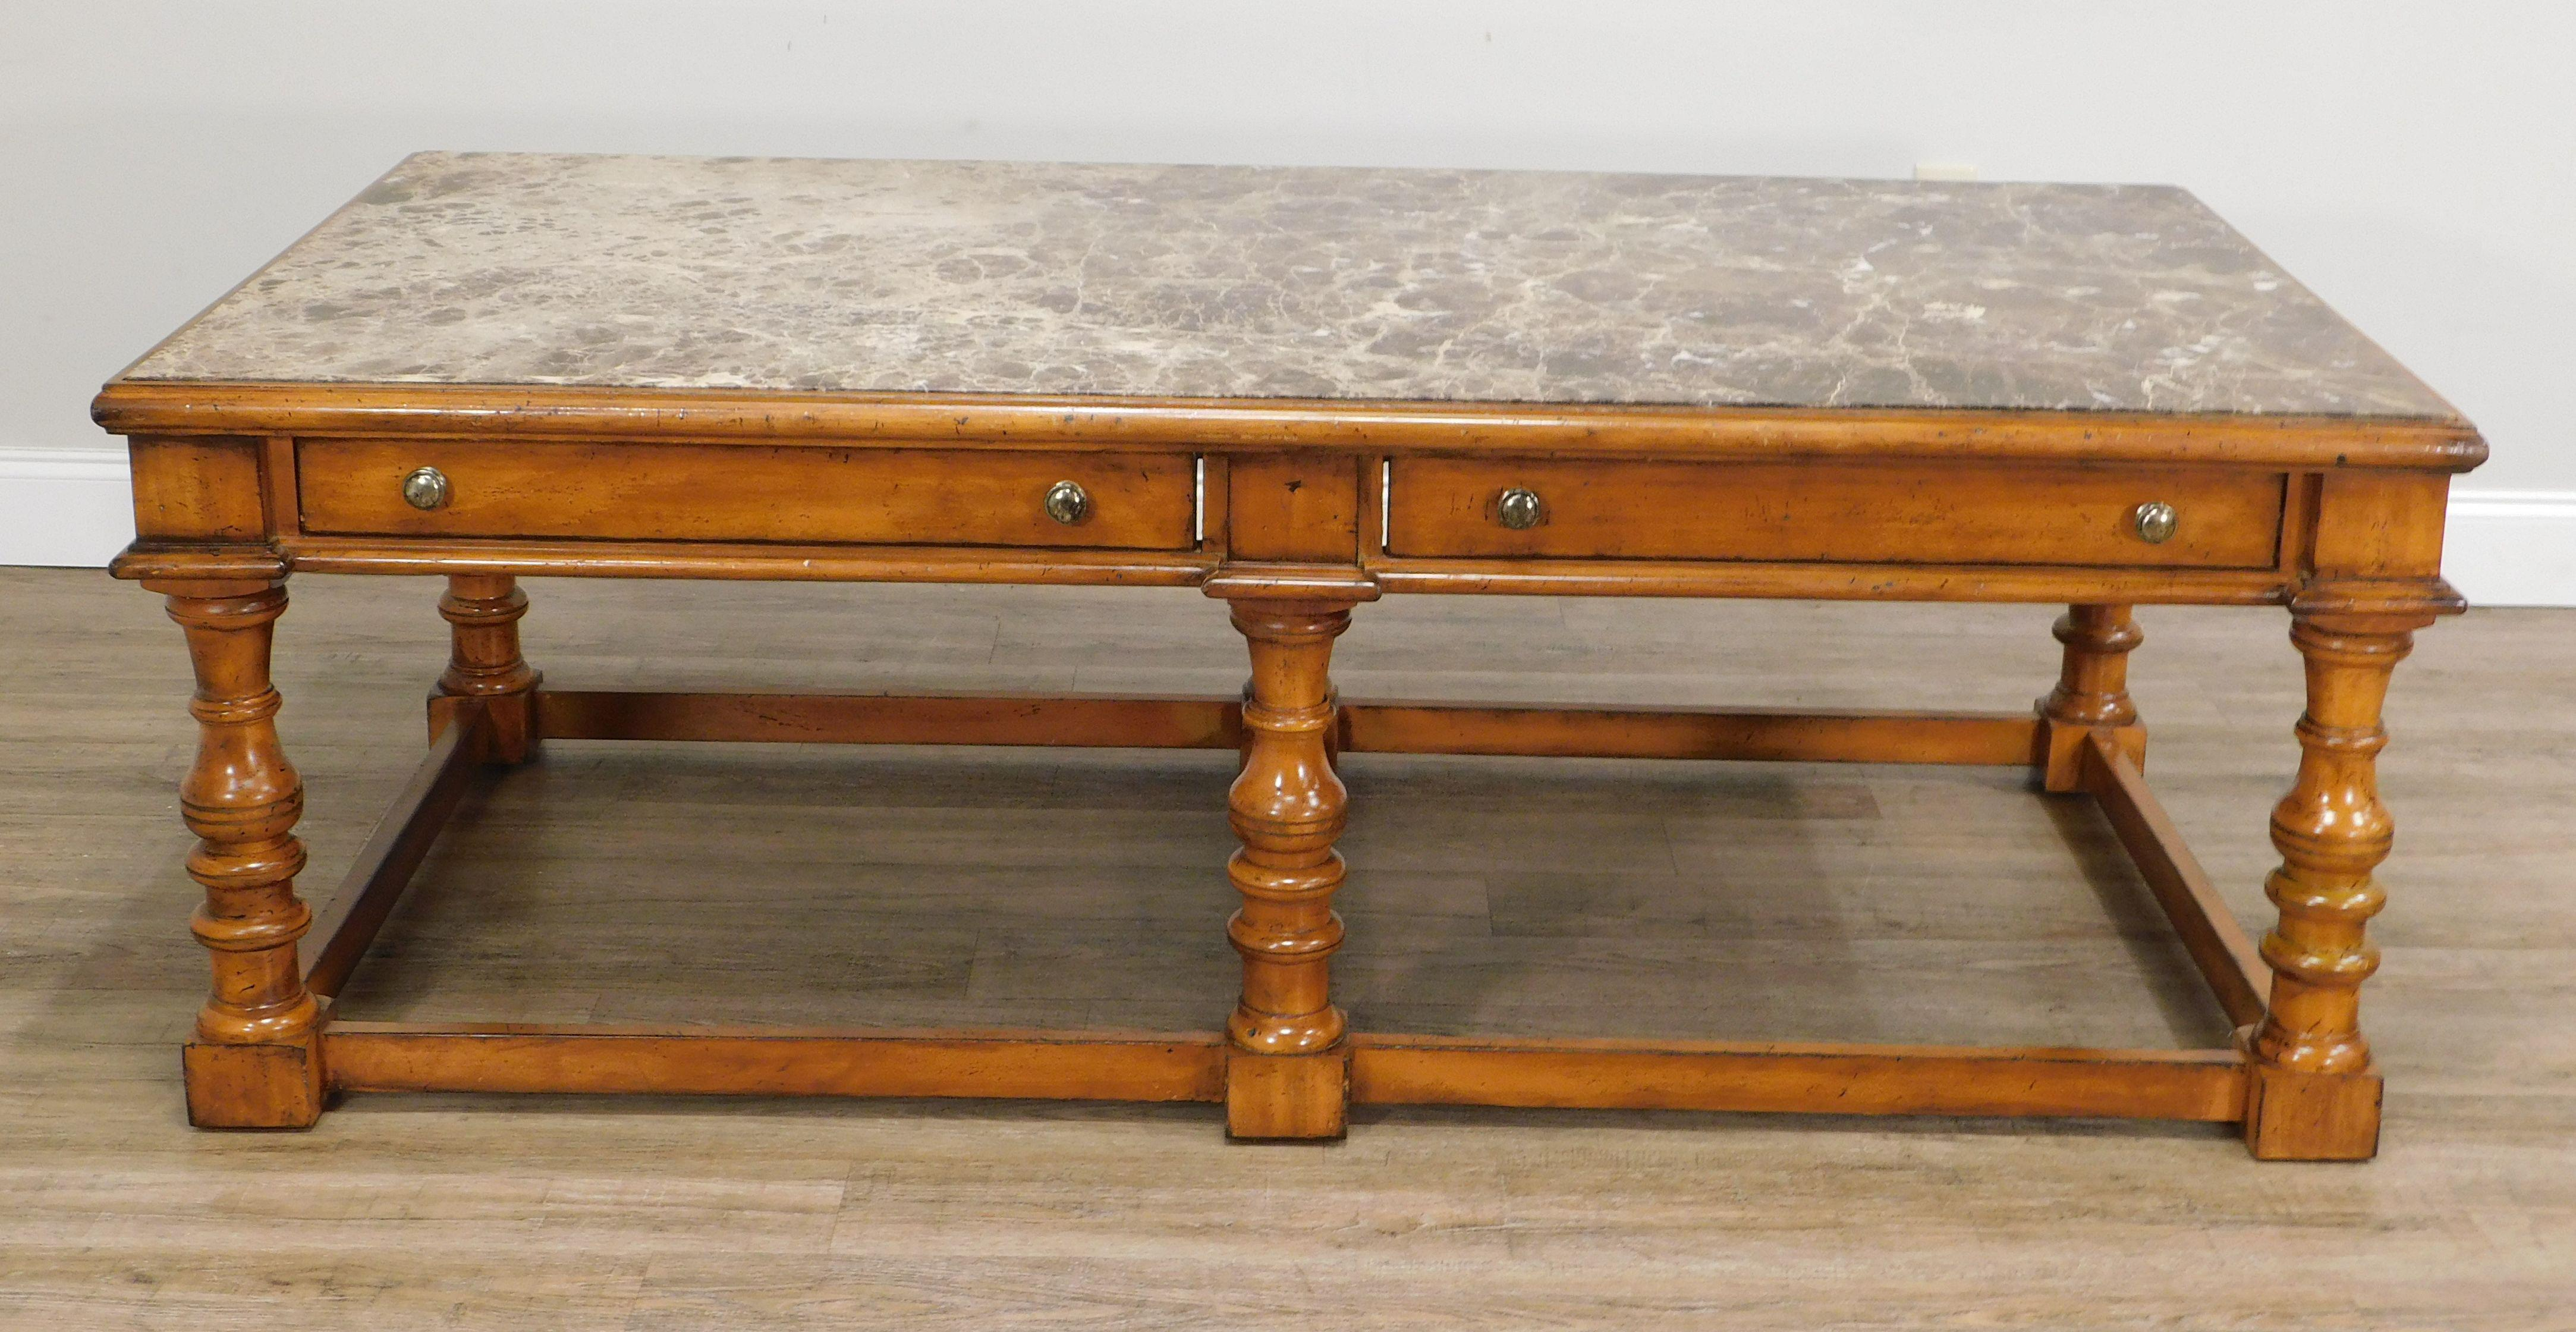 lexington palmer home gentlemen s quarters large marble inlay top cocktail table with drawers